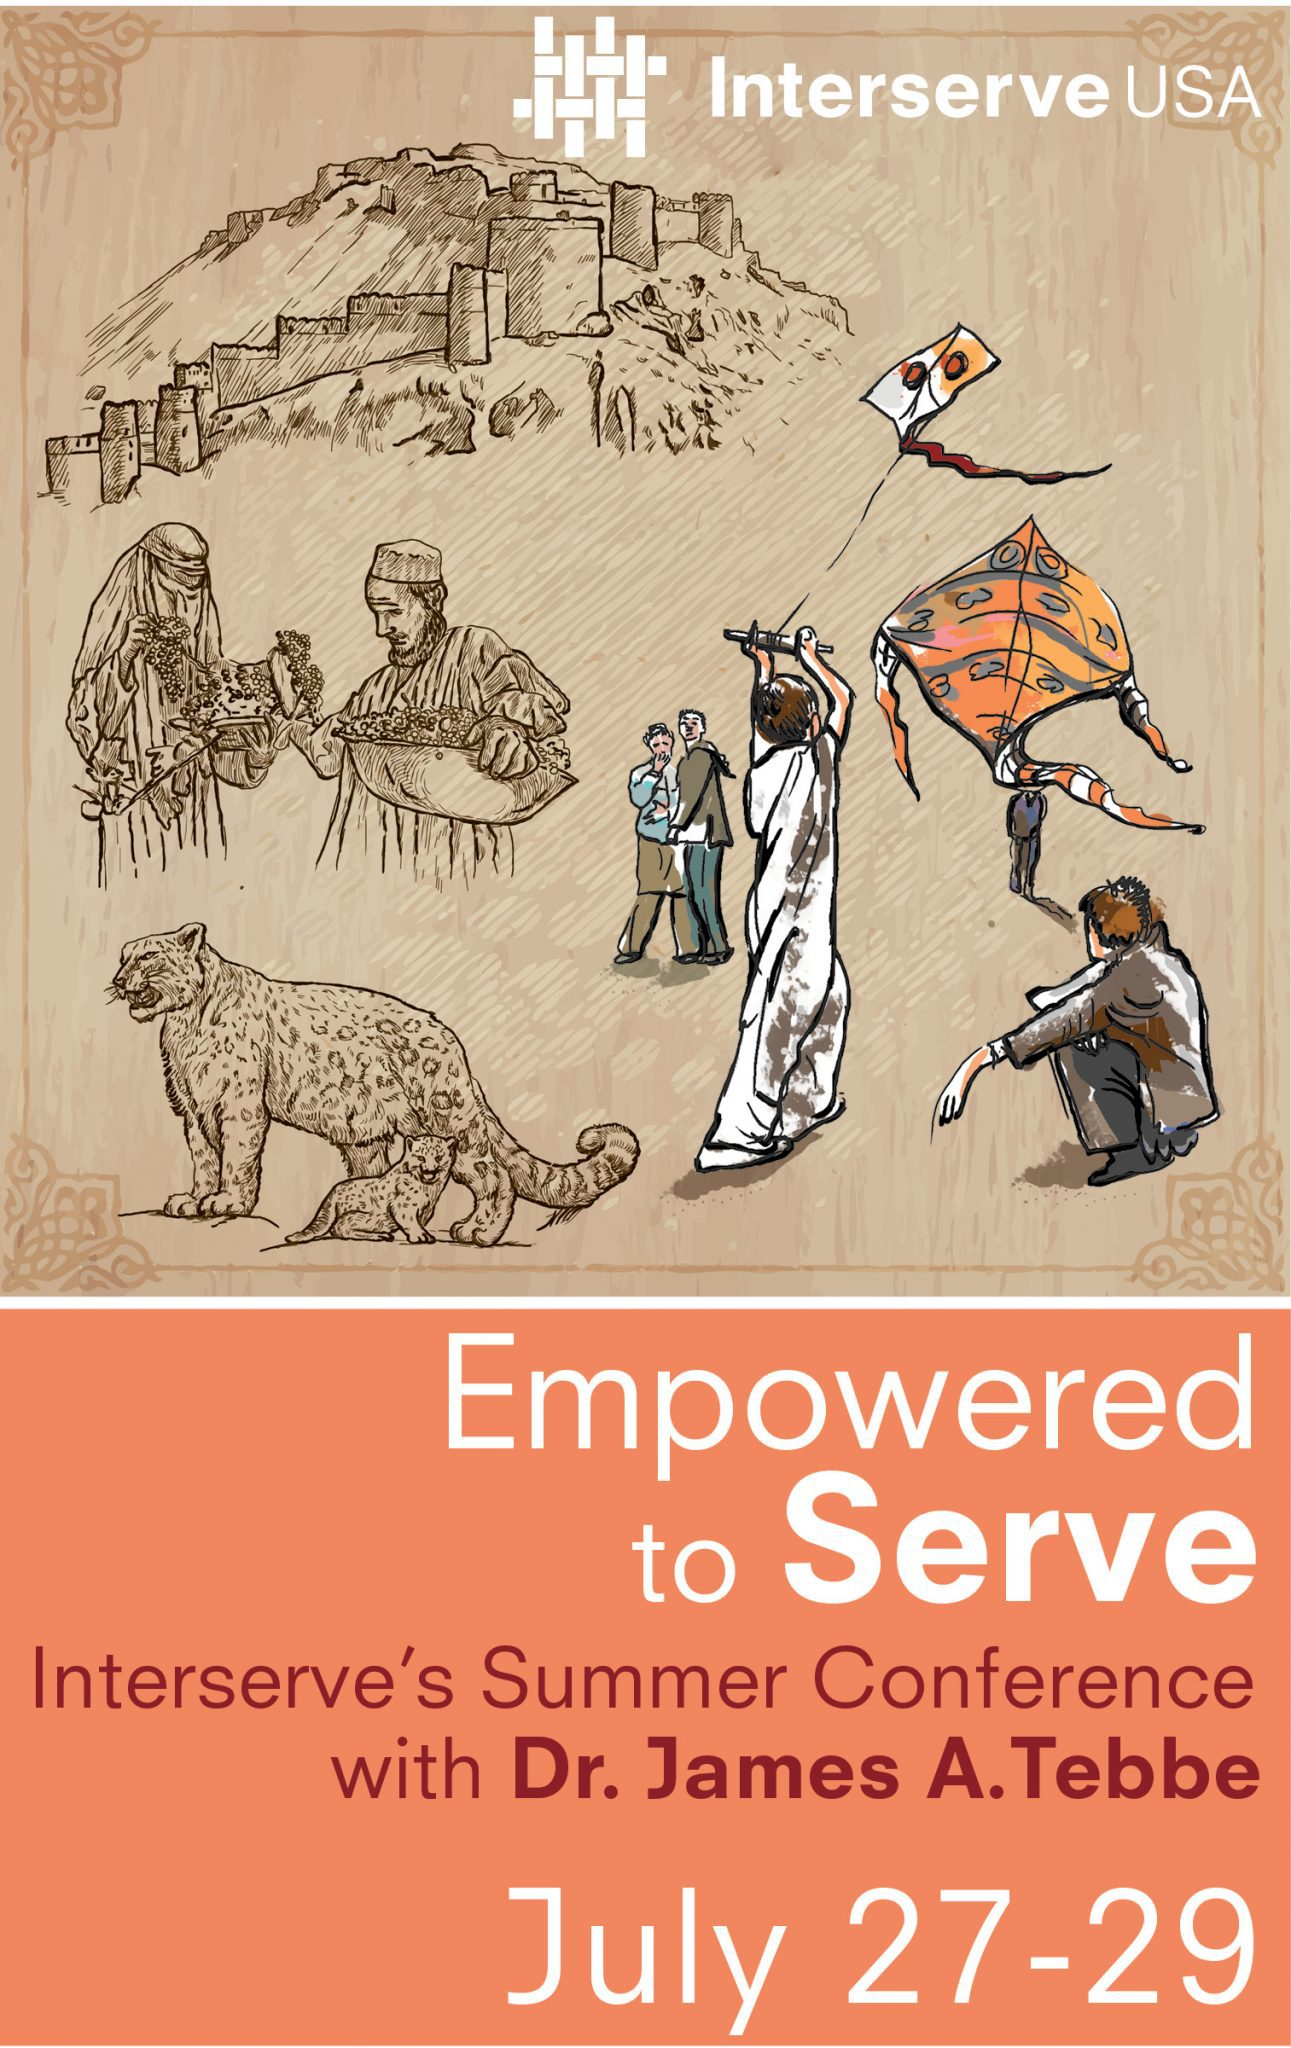 Empowered to serve